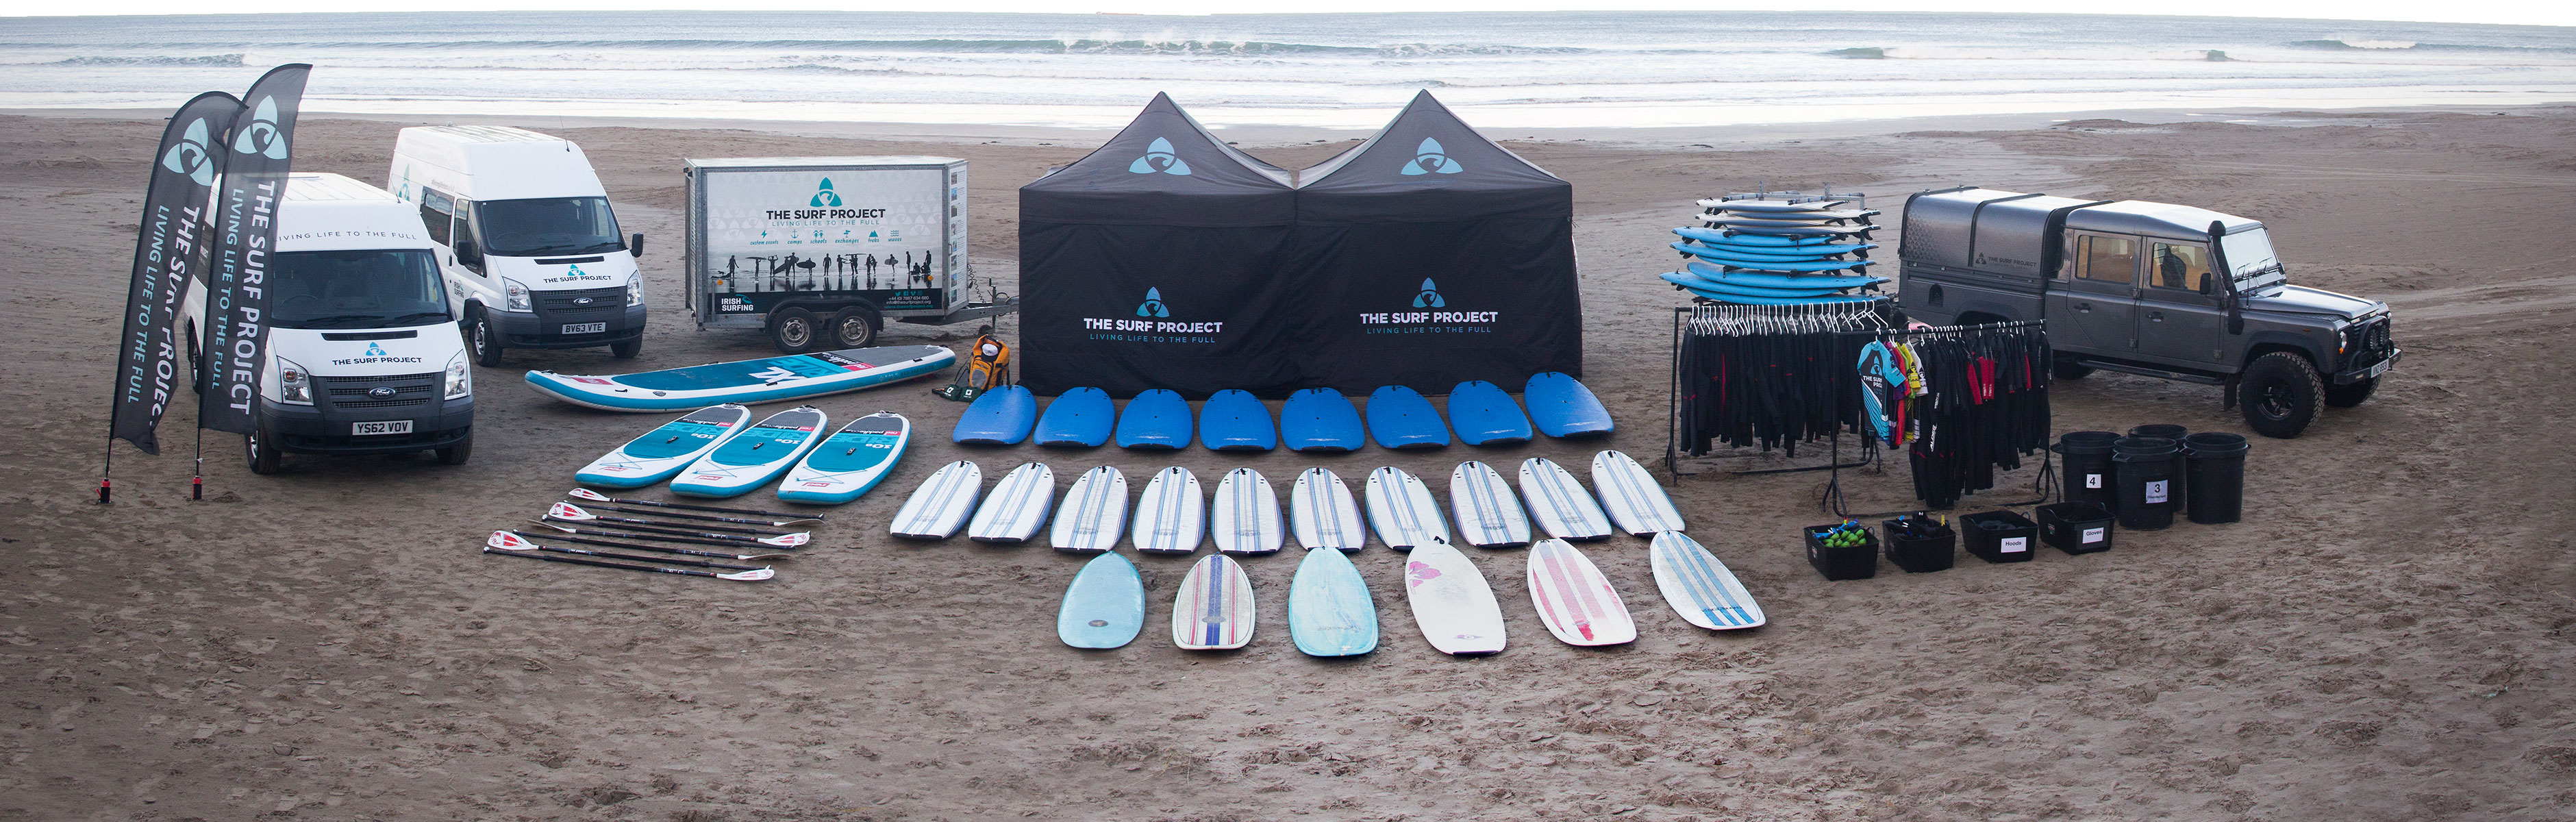 Fully equipped surf school